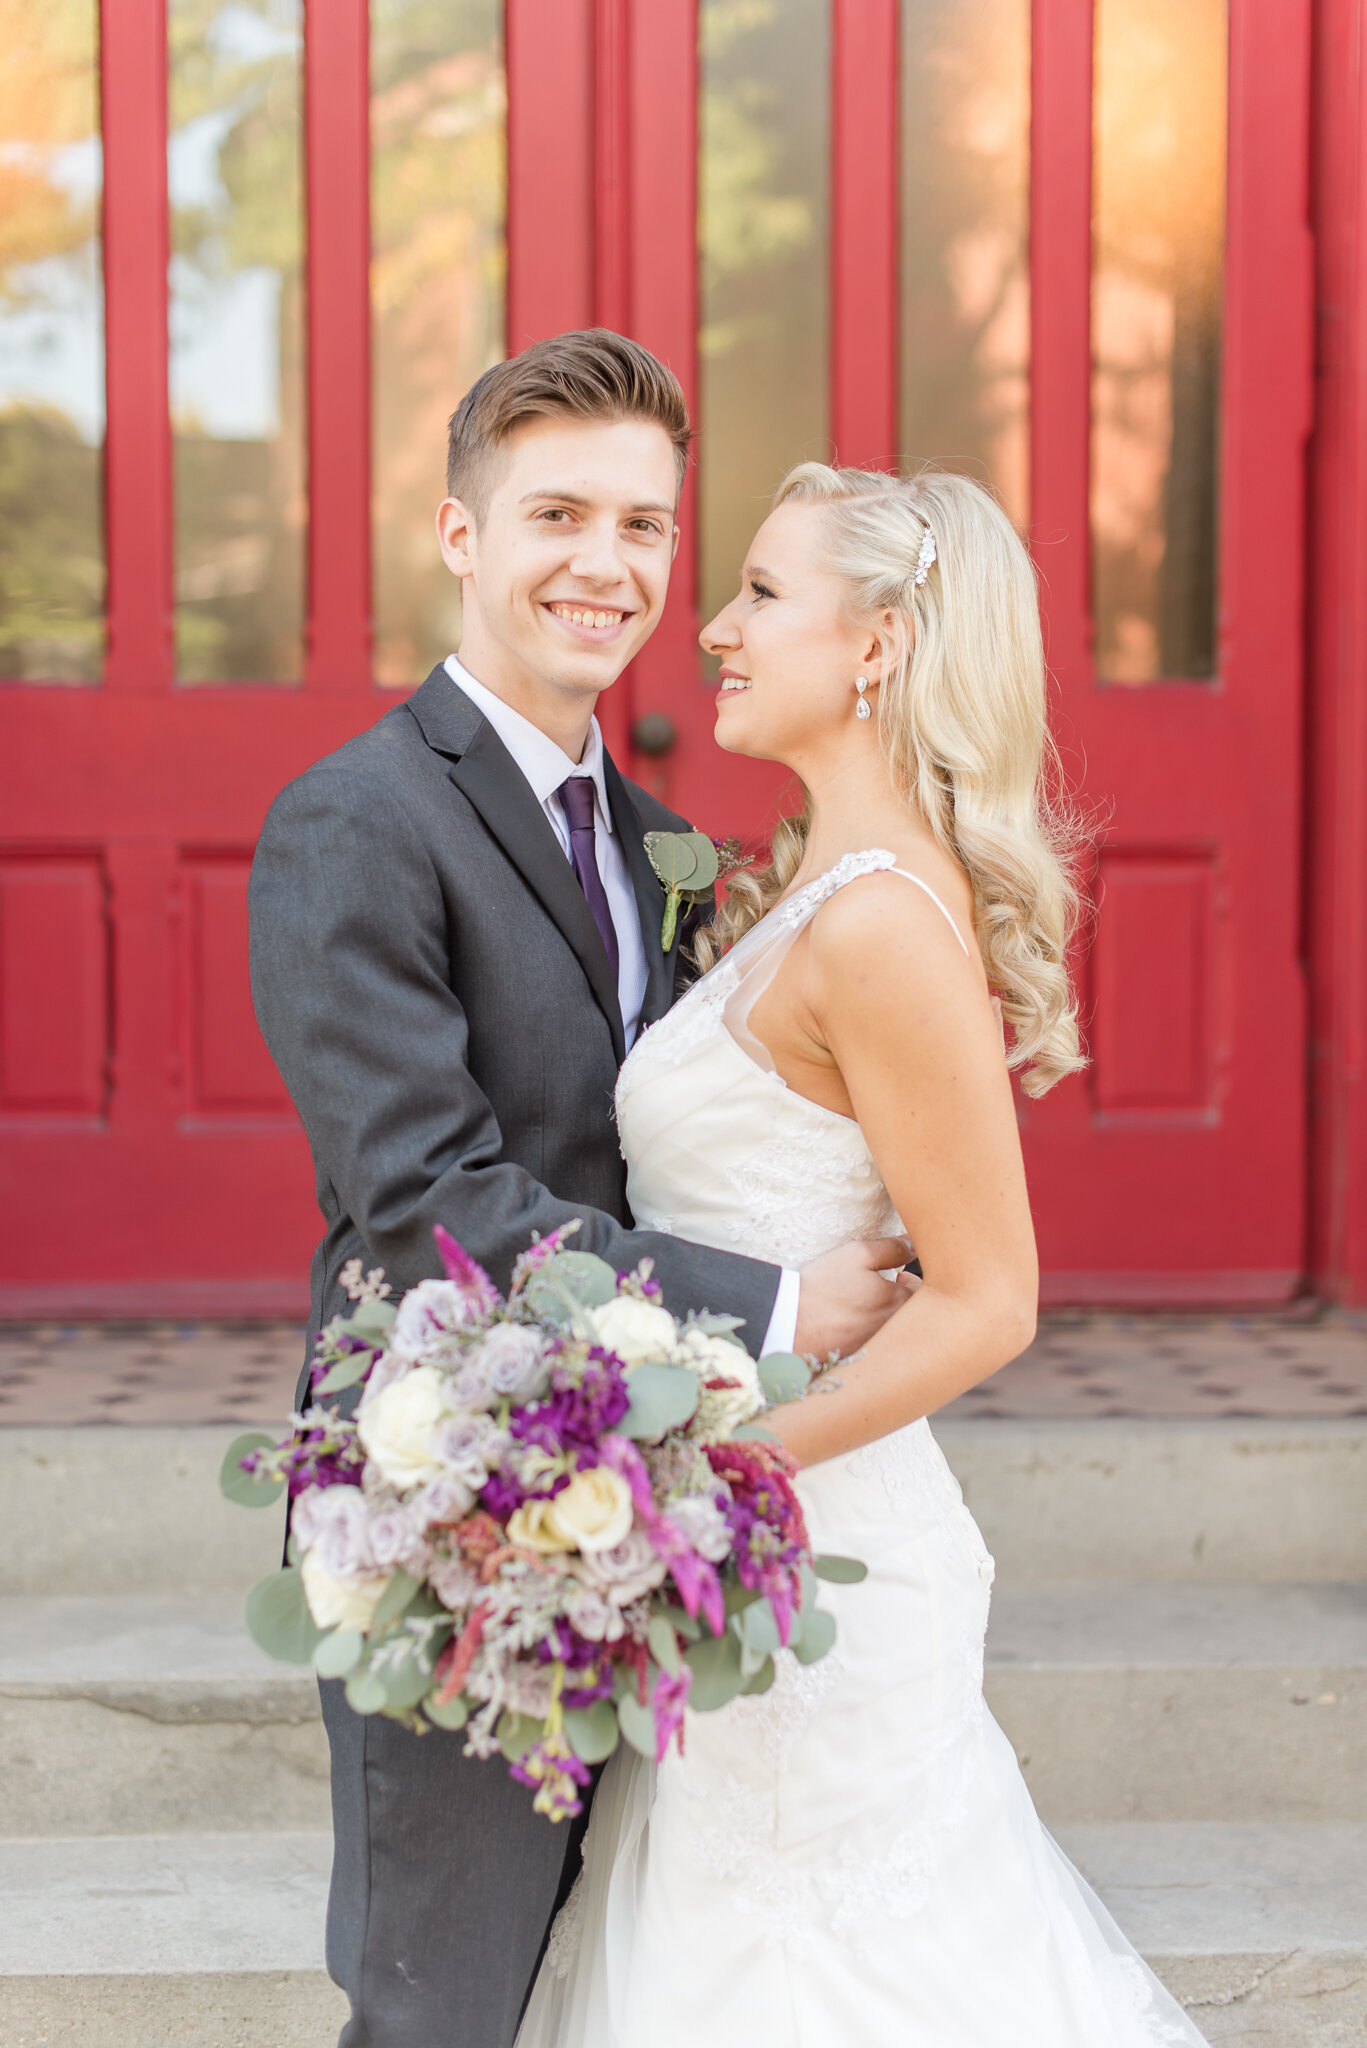 Downtown Indianapolis Wedding at Cyrus Place7521.jpg